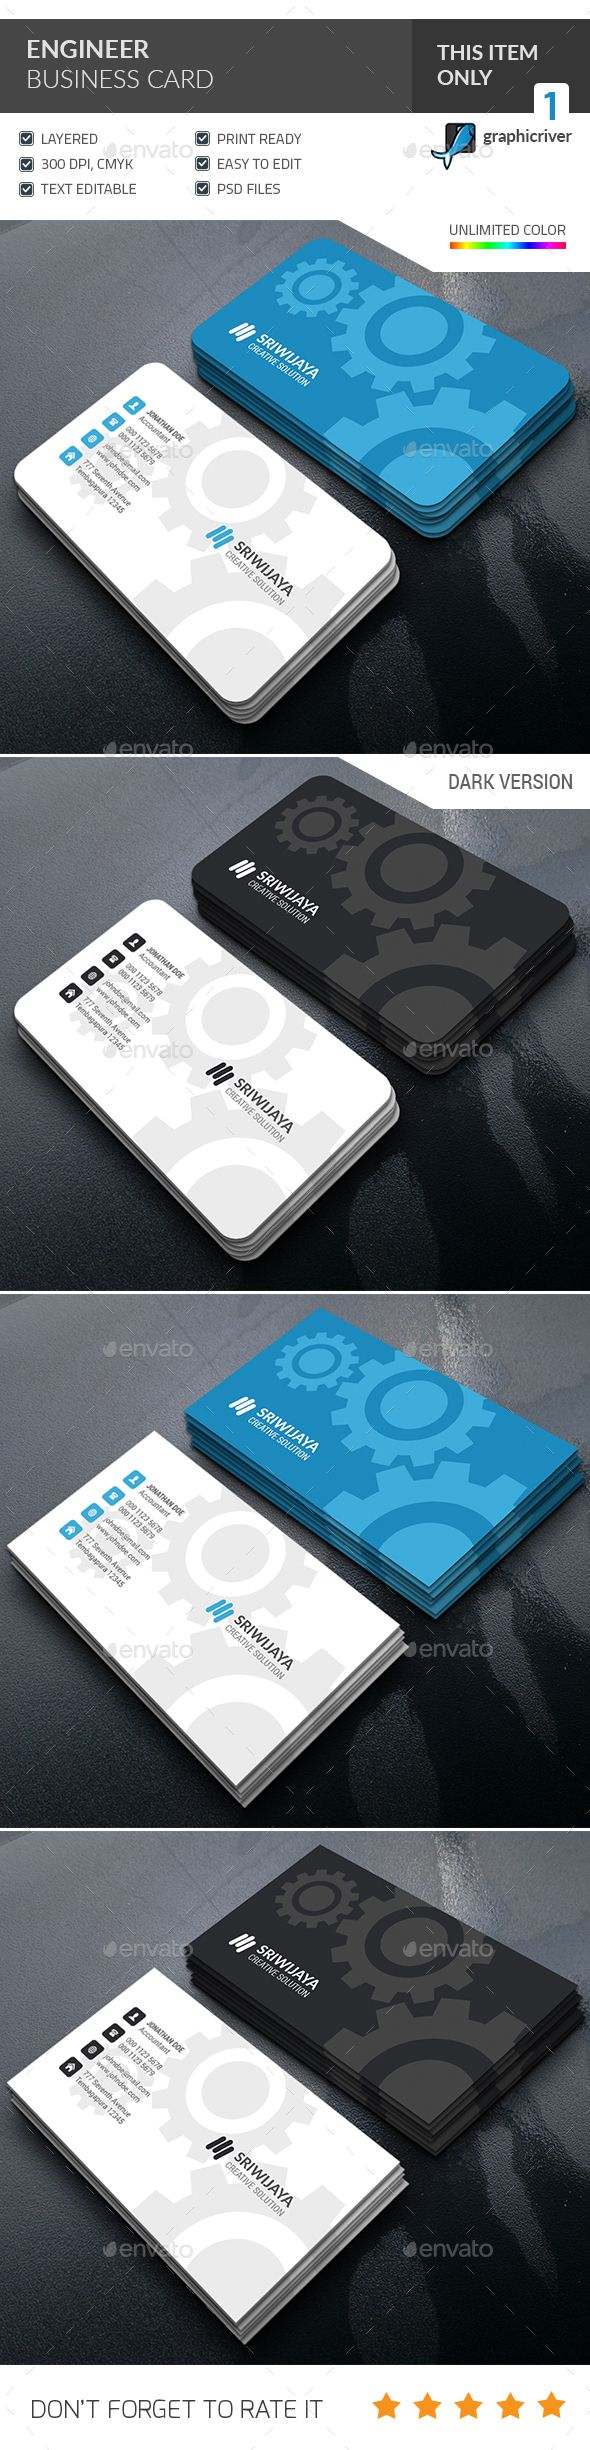 Engineer business card card templates business cards and template engineer business card magicingreecefo Gallery